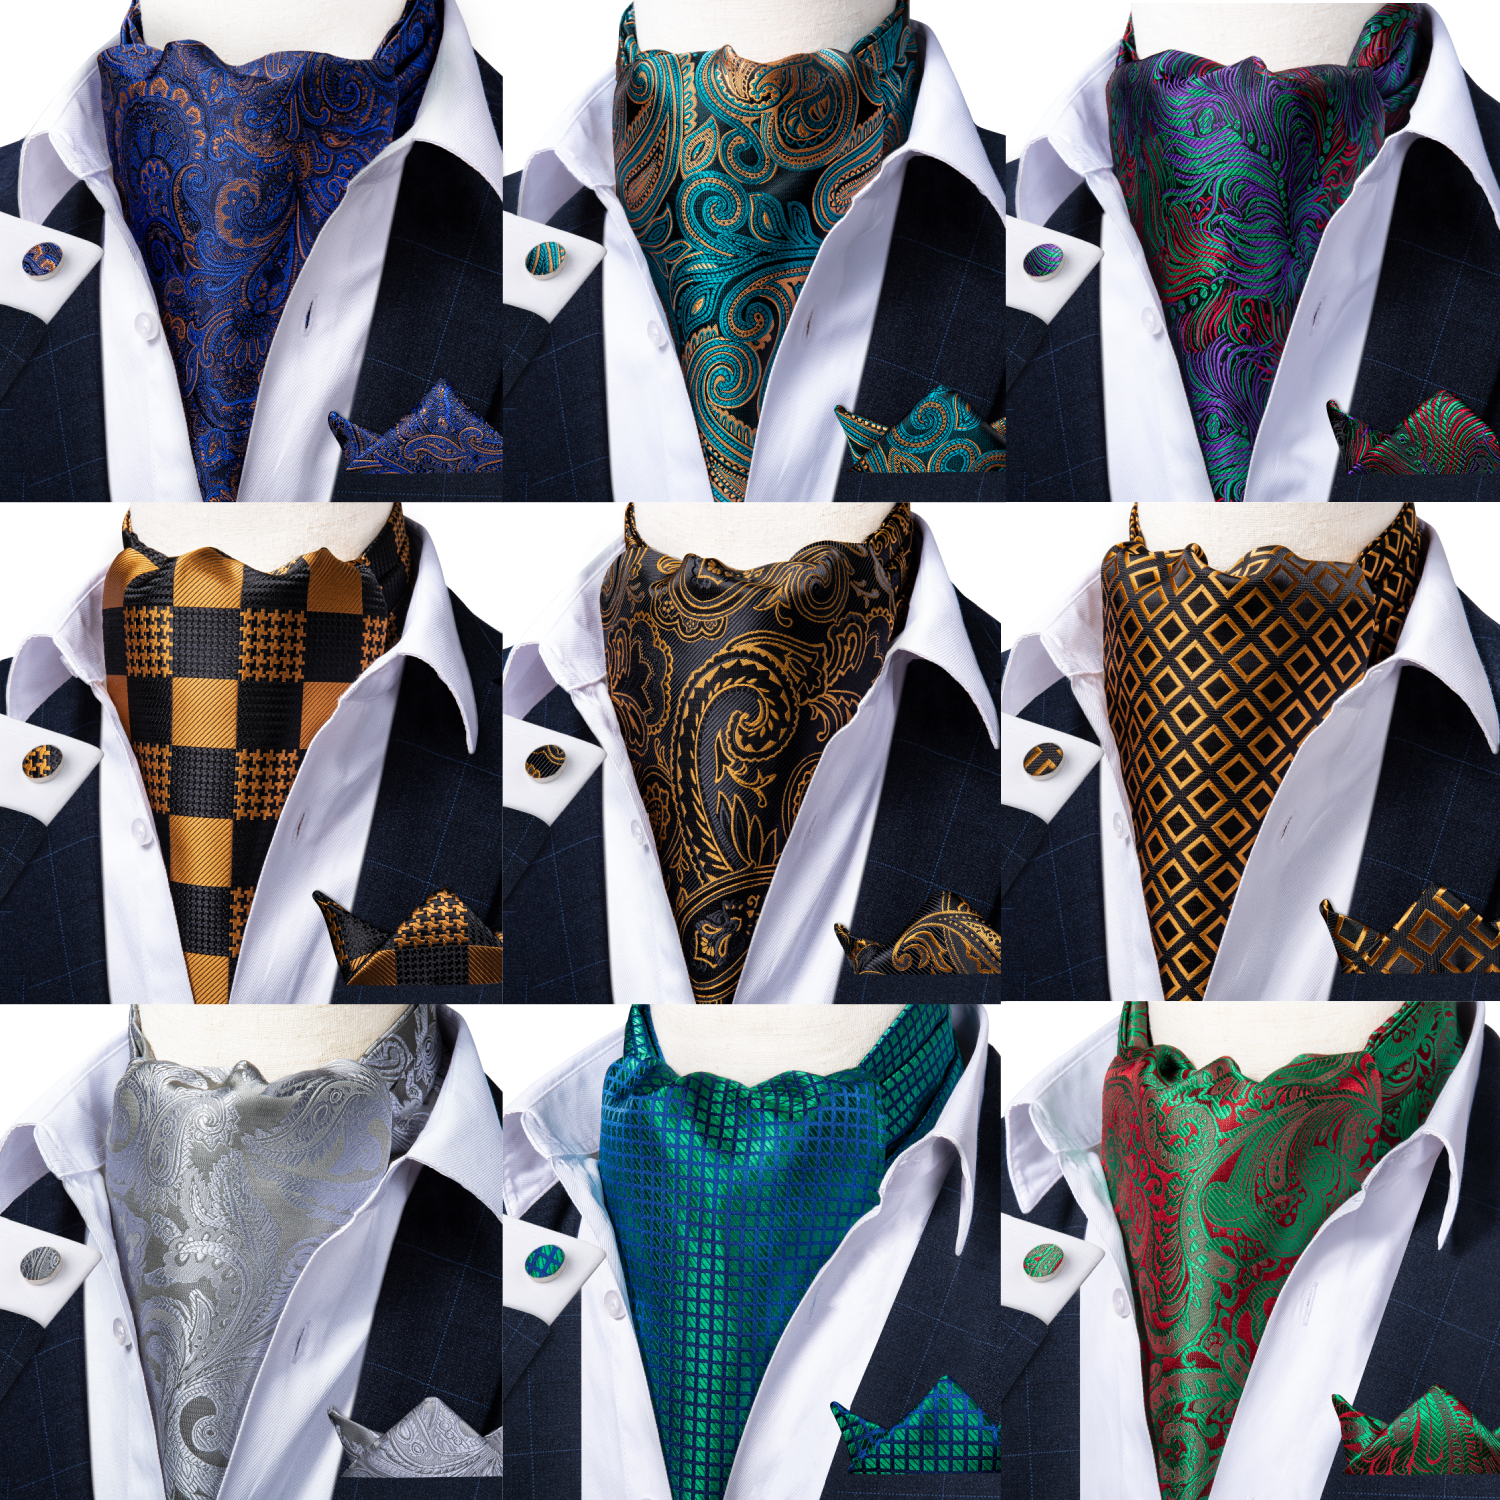 Mens Paisley Silk Floral Check Gold Teal Green Vintage Necktie Cravat Tie Wedding Formal Ascot Scarves Pocket Square Set DiBanGu